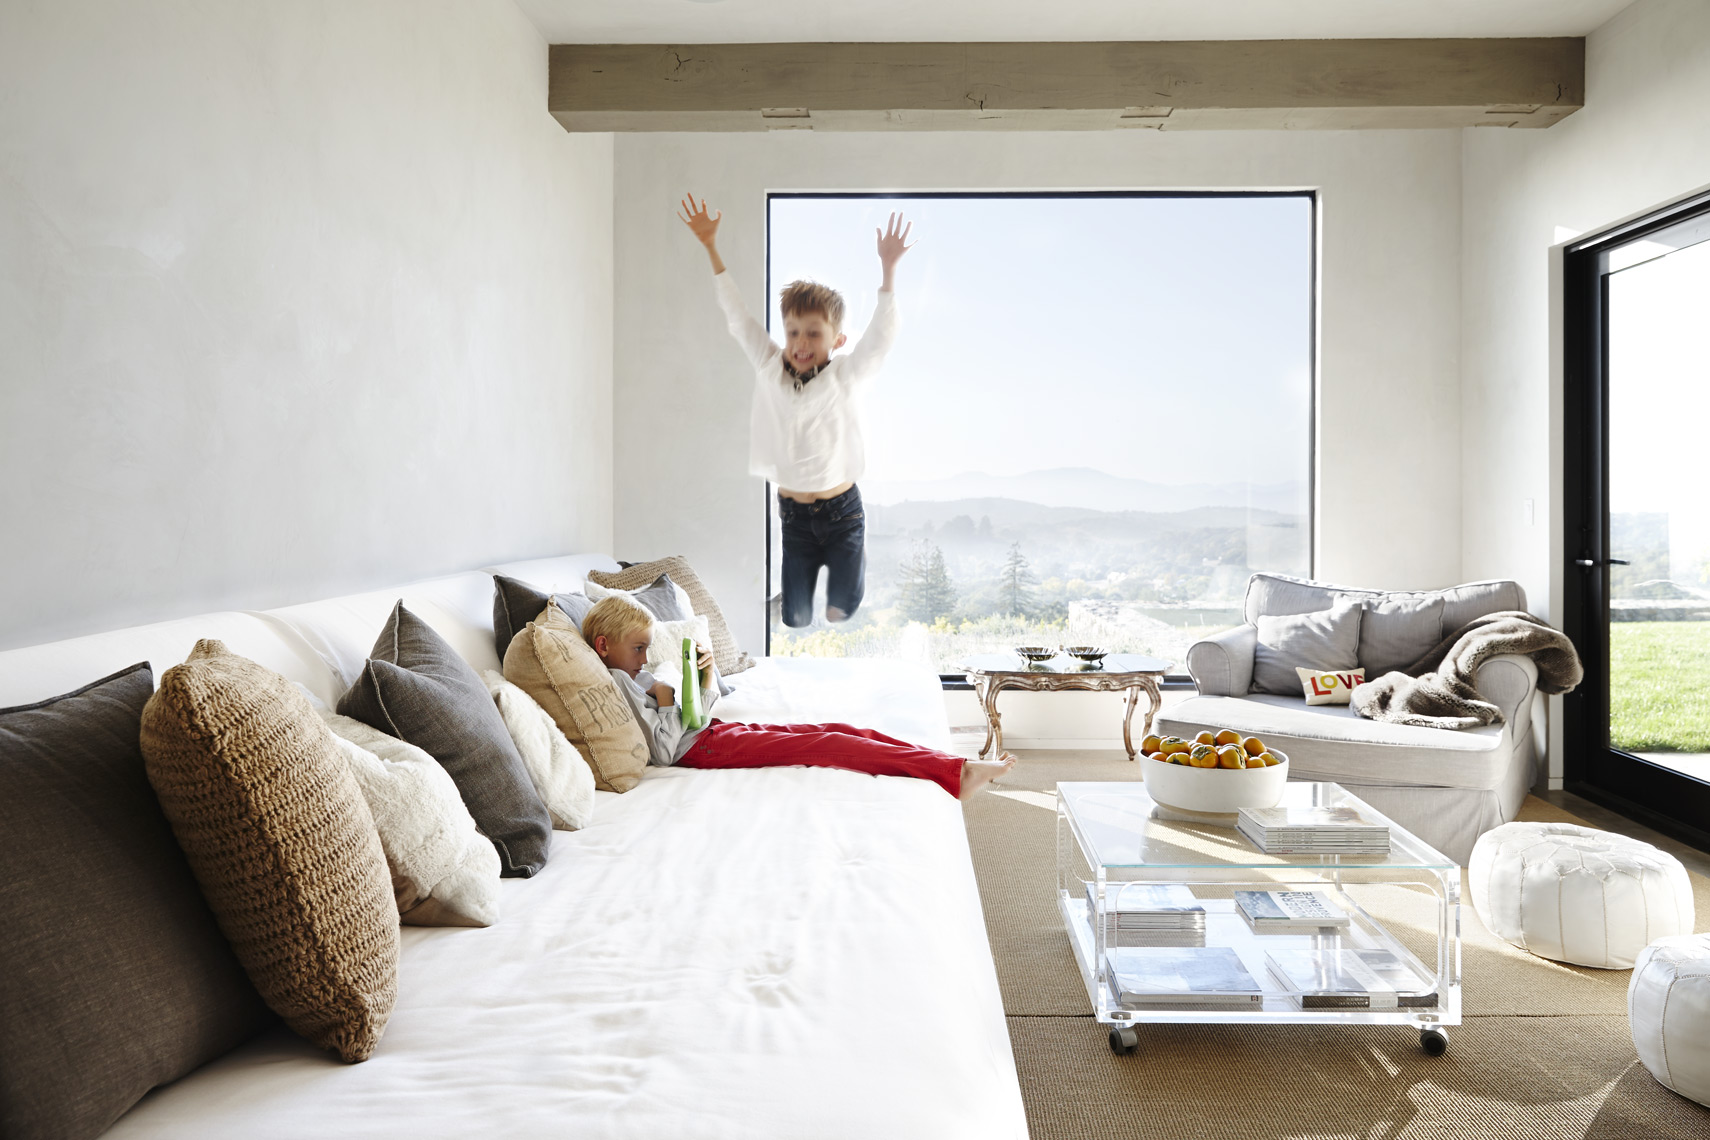 Child leaping over kid using ipad on sectional sofa in modern house Sean Dagen Photography